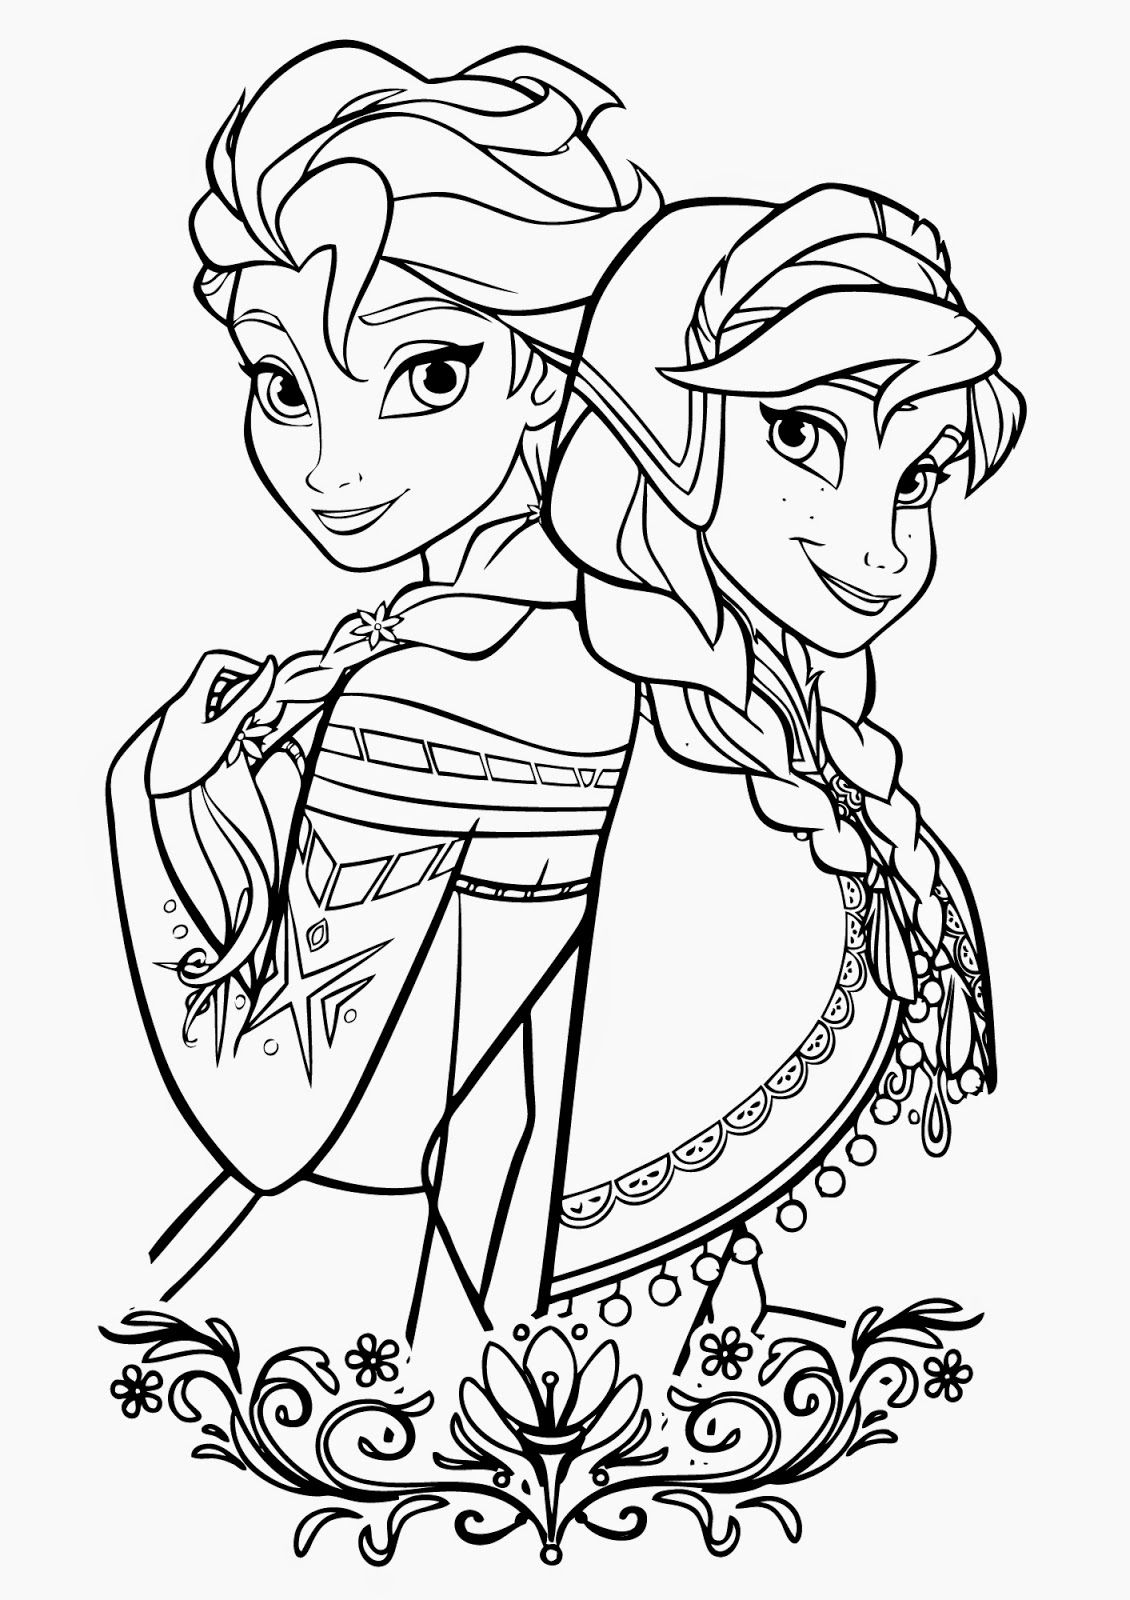 Elsa Freeze Coloring Page Free Online Printable Coloring Pages Sheets For Kids Get The Latest Free Elsa Freeze Coloring Page Images Favorite Coloring